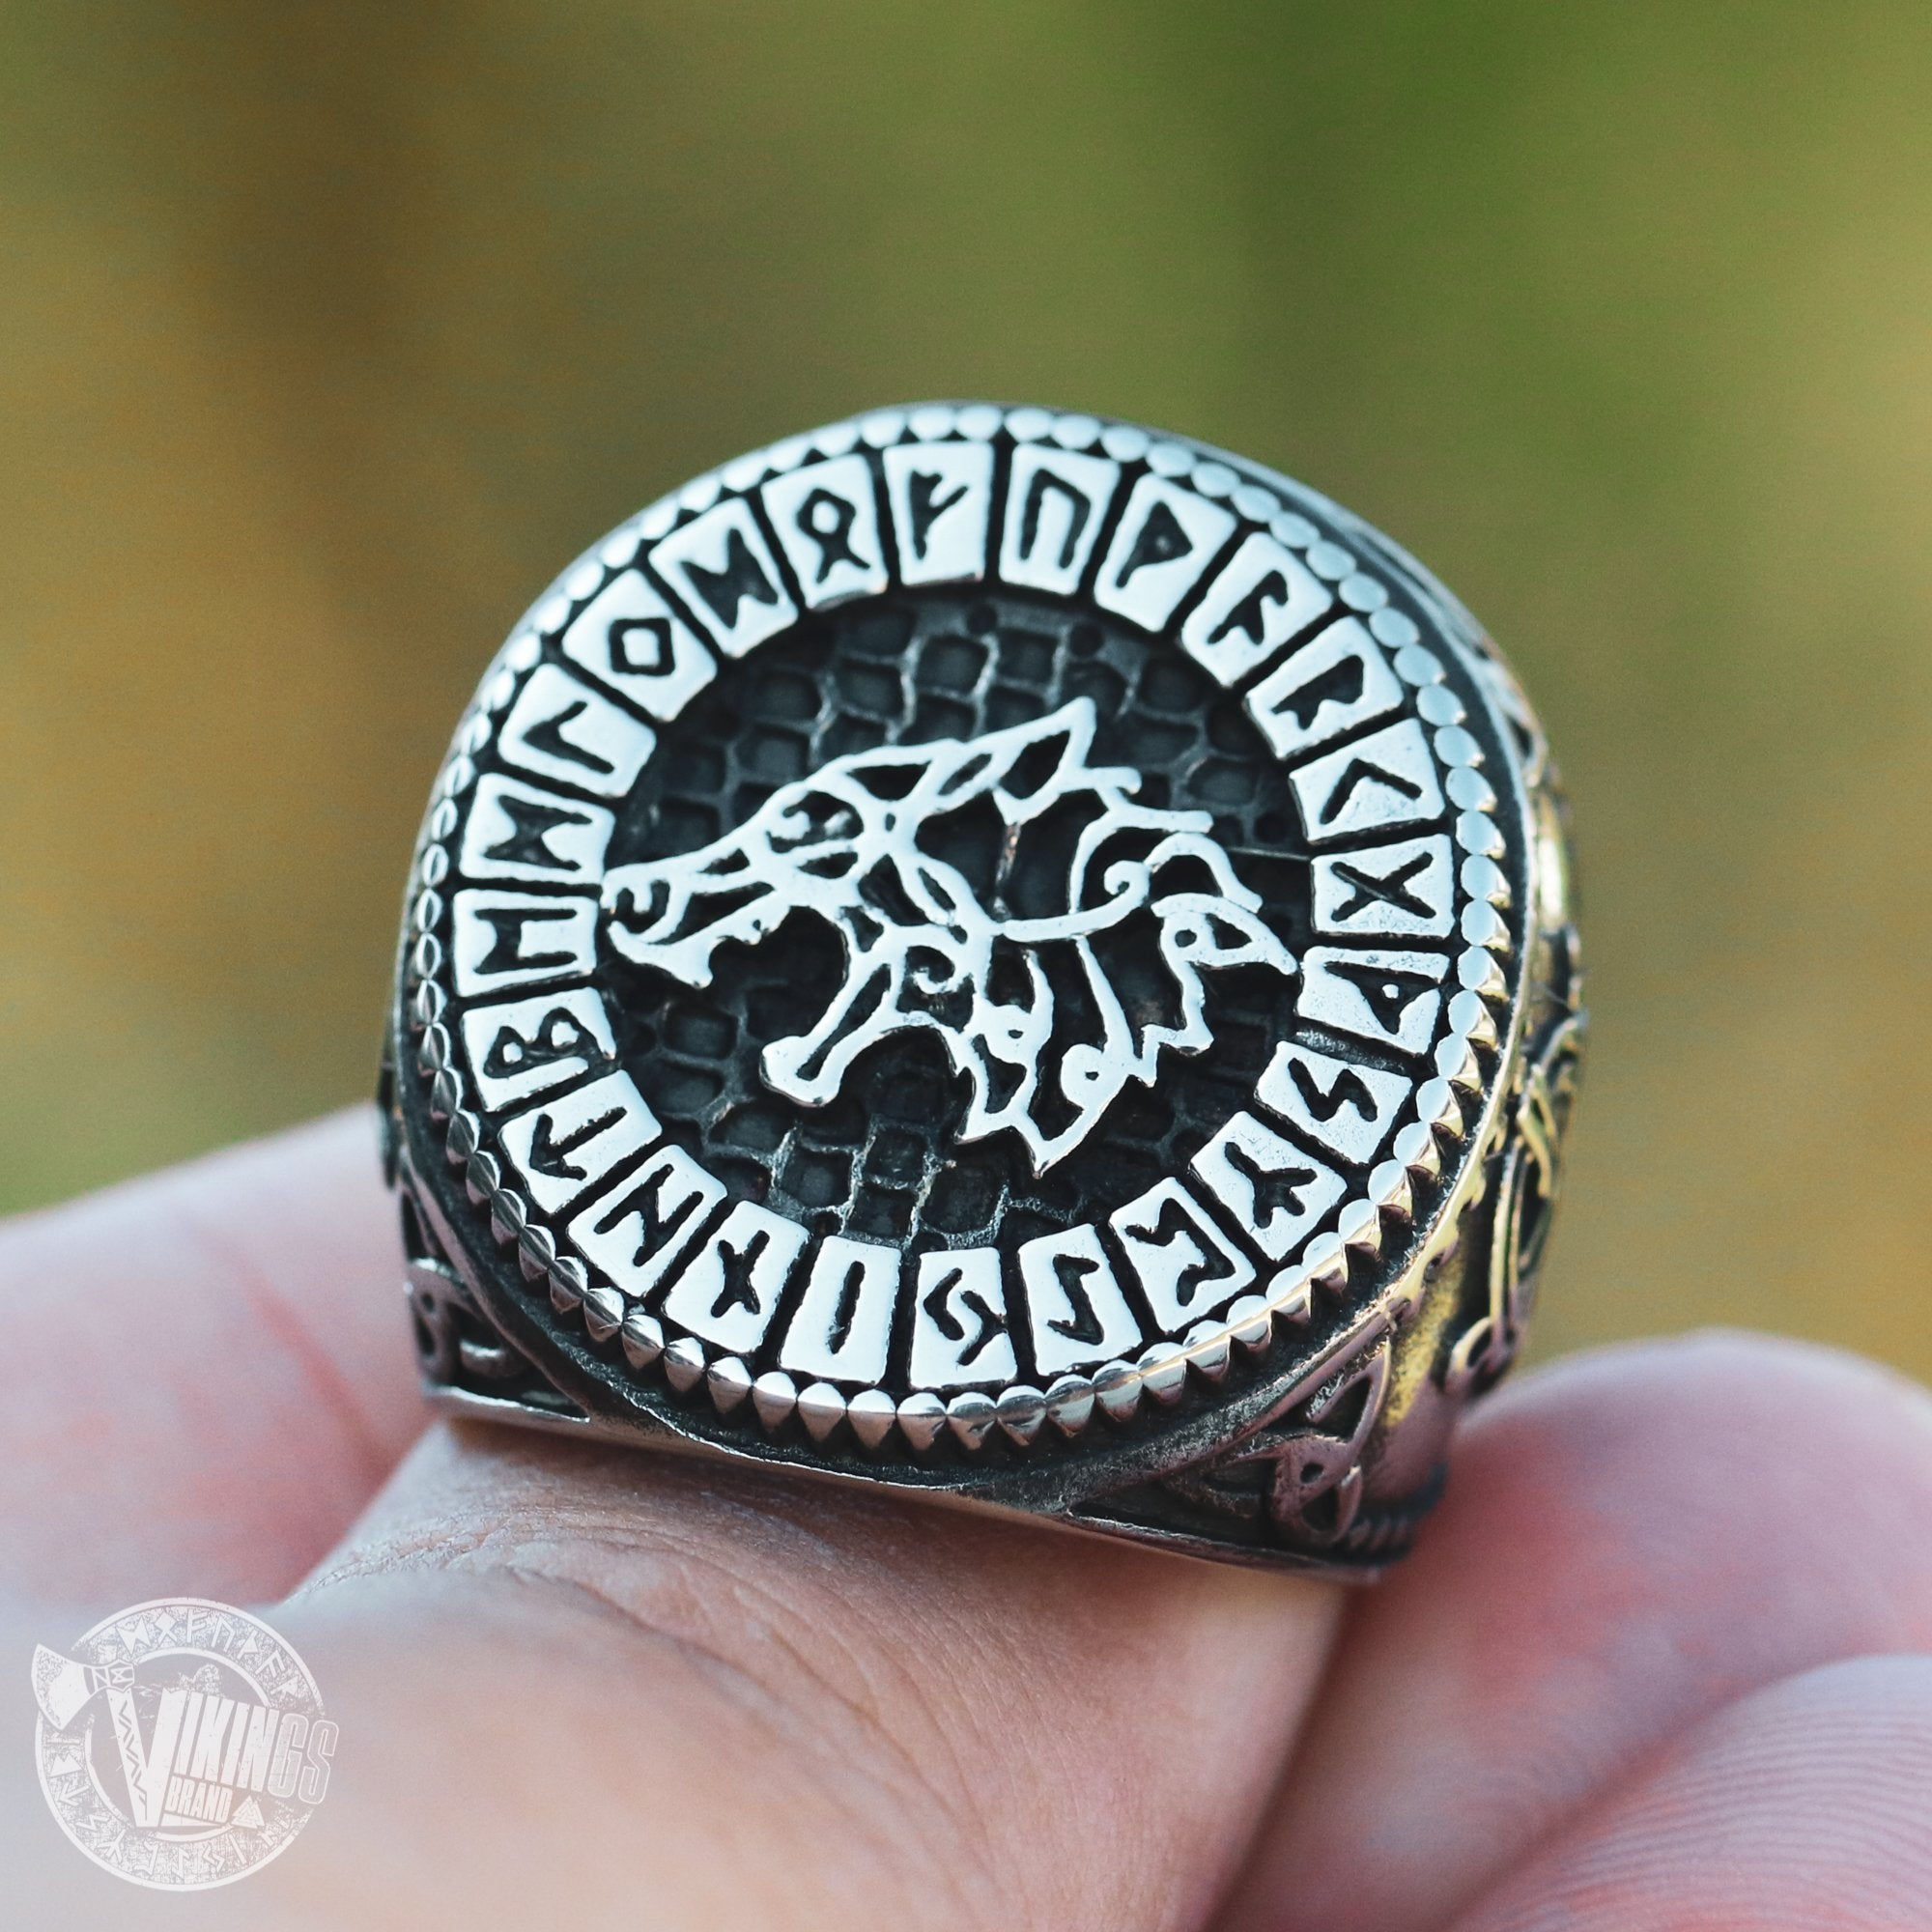 Viking Wolf Fenrir Stainless Steel Ring with Runic Circle - VikingsBrand